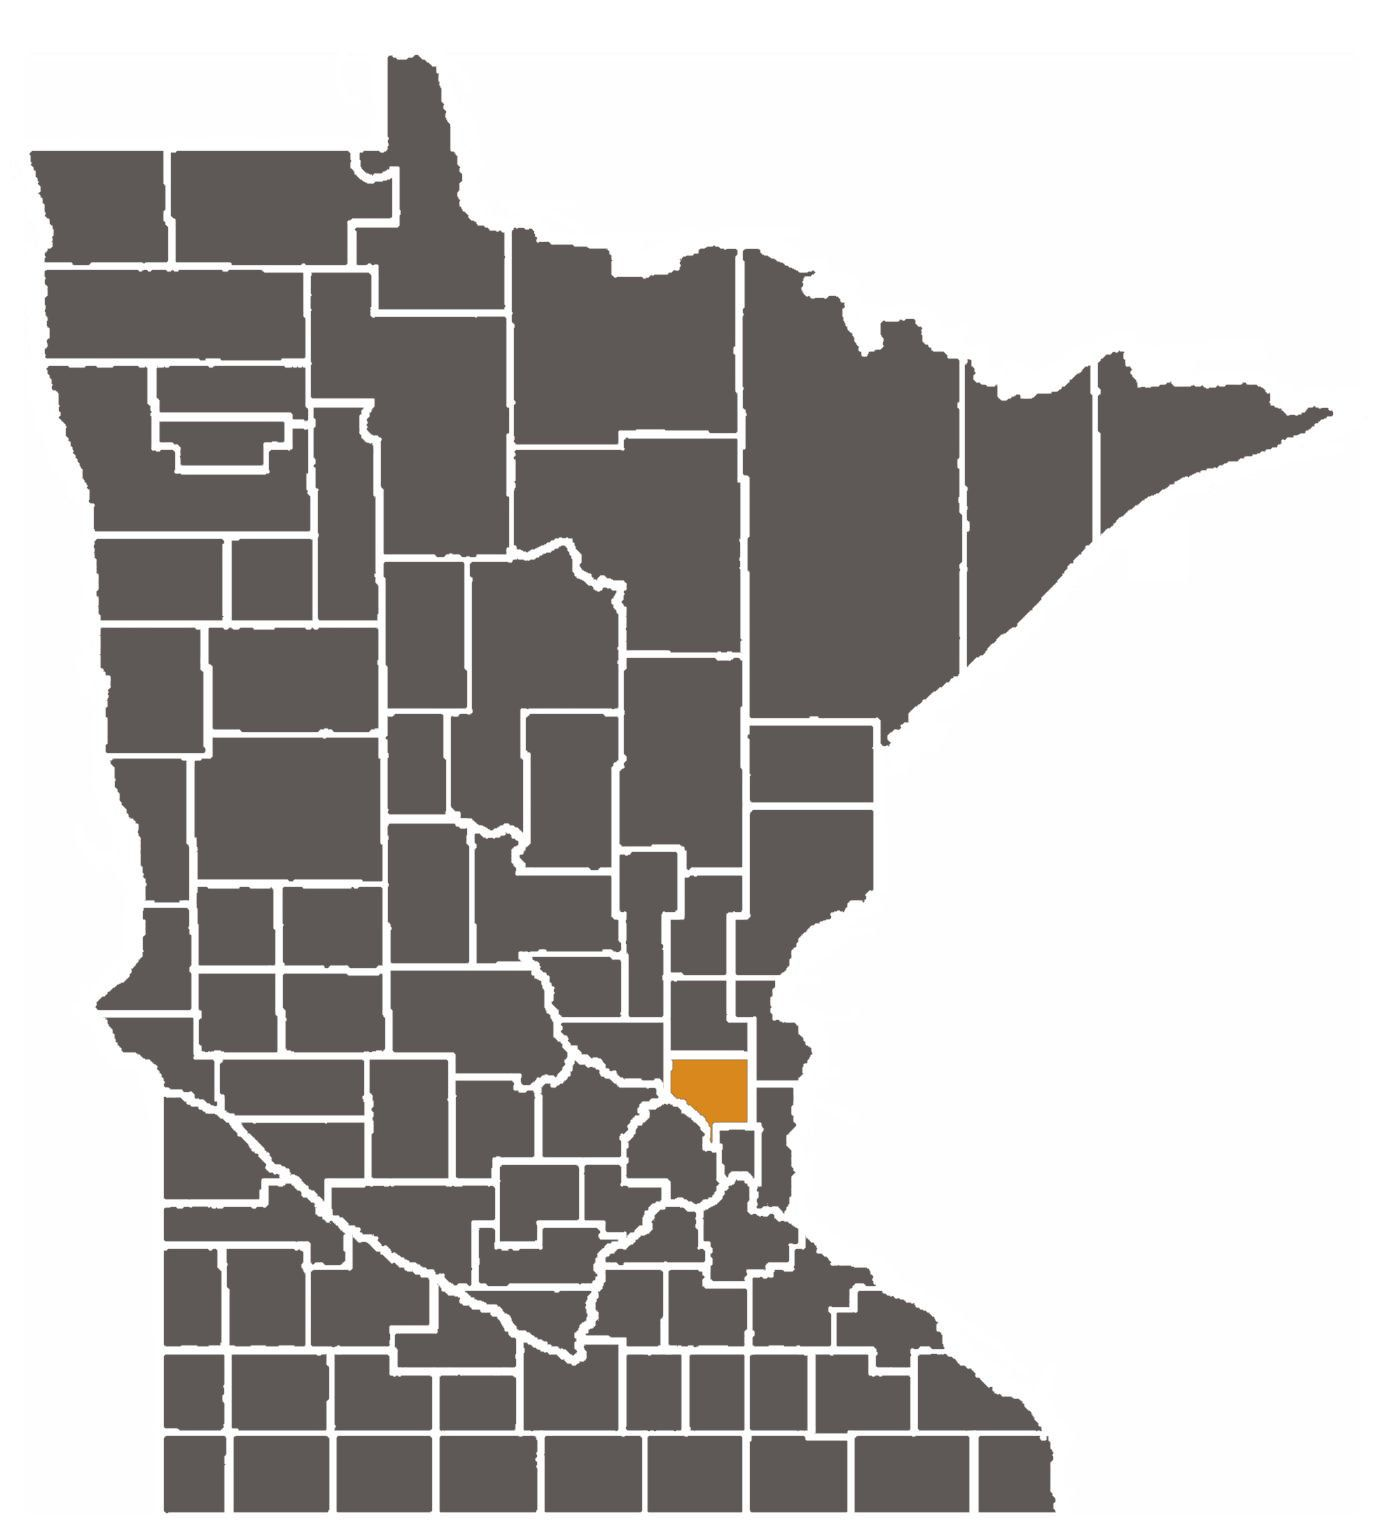 Minnesota map with Anoka County highlighted.